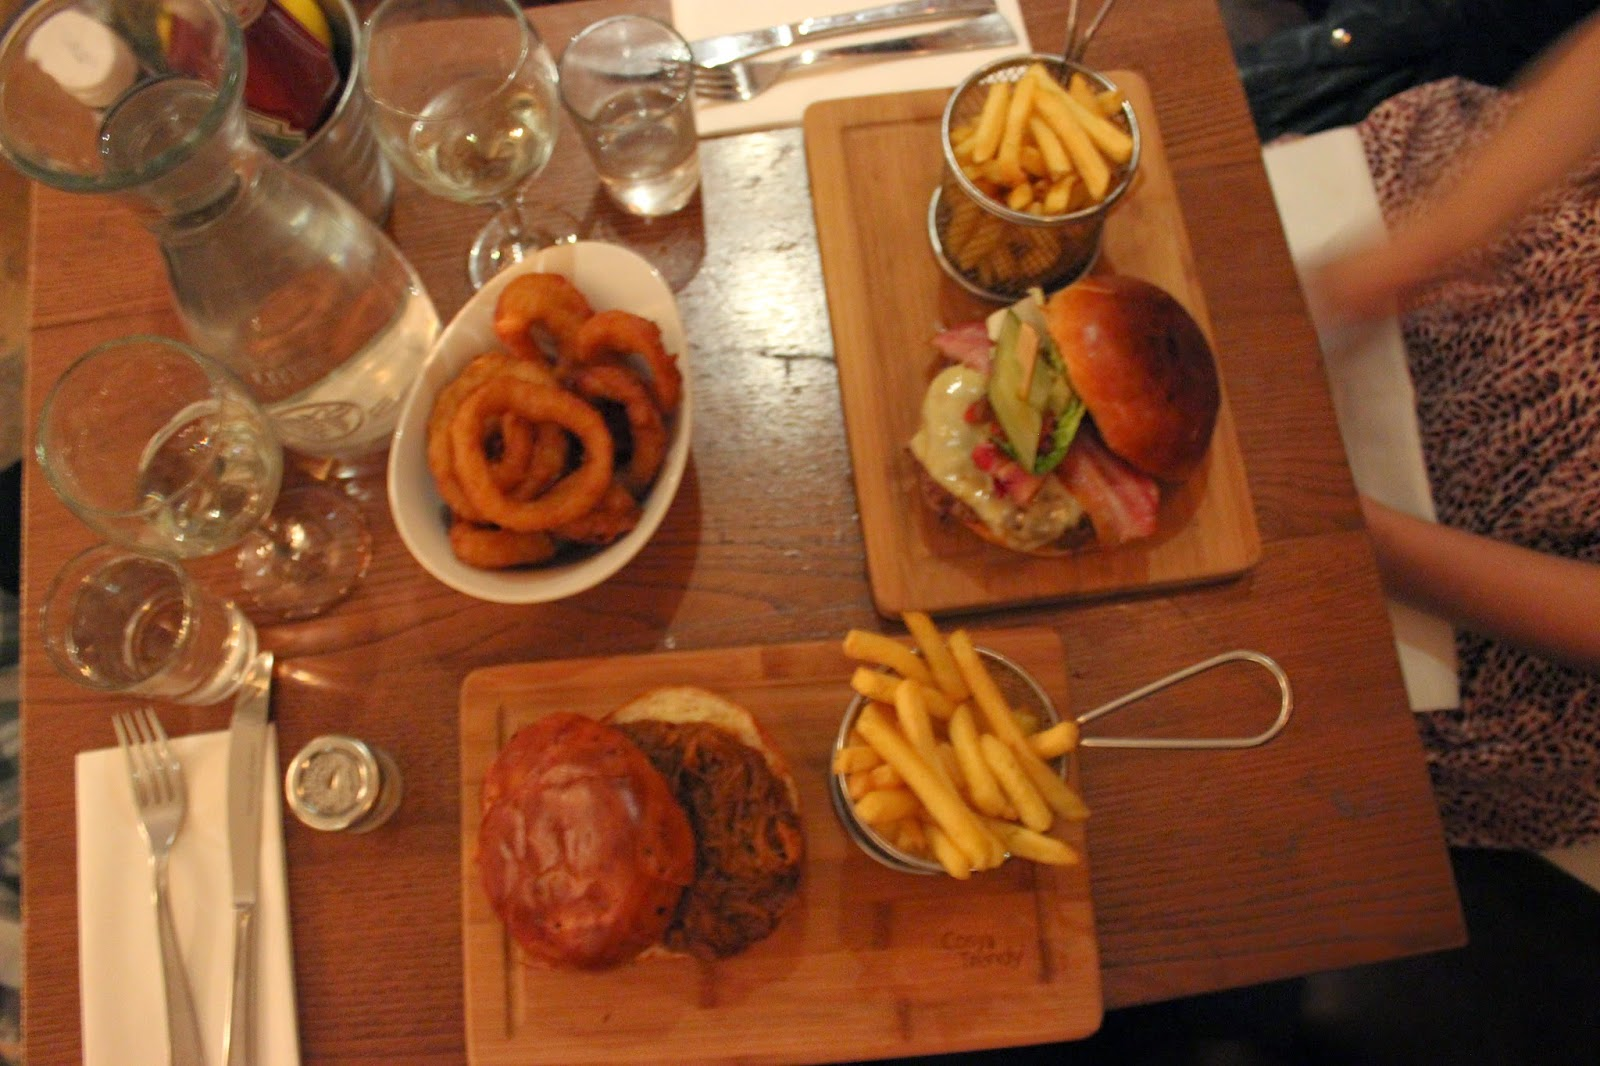 Honky Tonk, Clapham, London, That Guy Luke, Blog, South London, London Restaurants, London Burger Places, Eating and Drinking, Narnia, Date, Dinner Date, Chelsea, Food Review London,